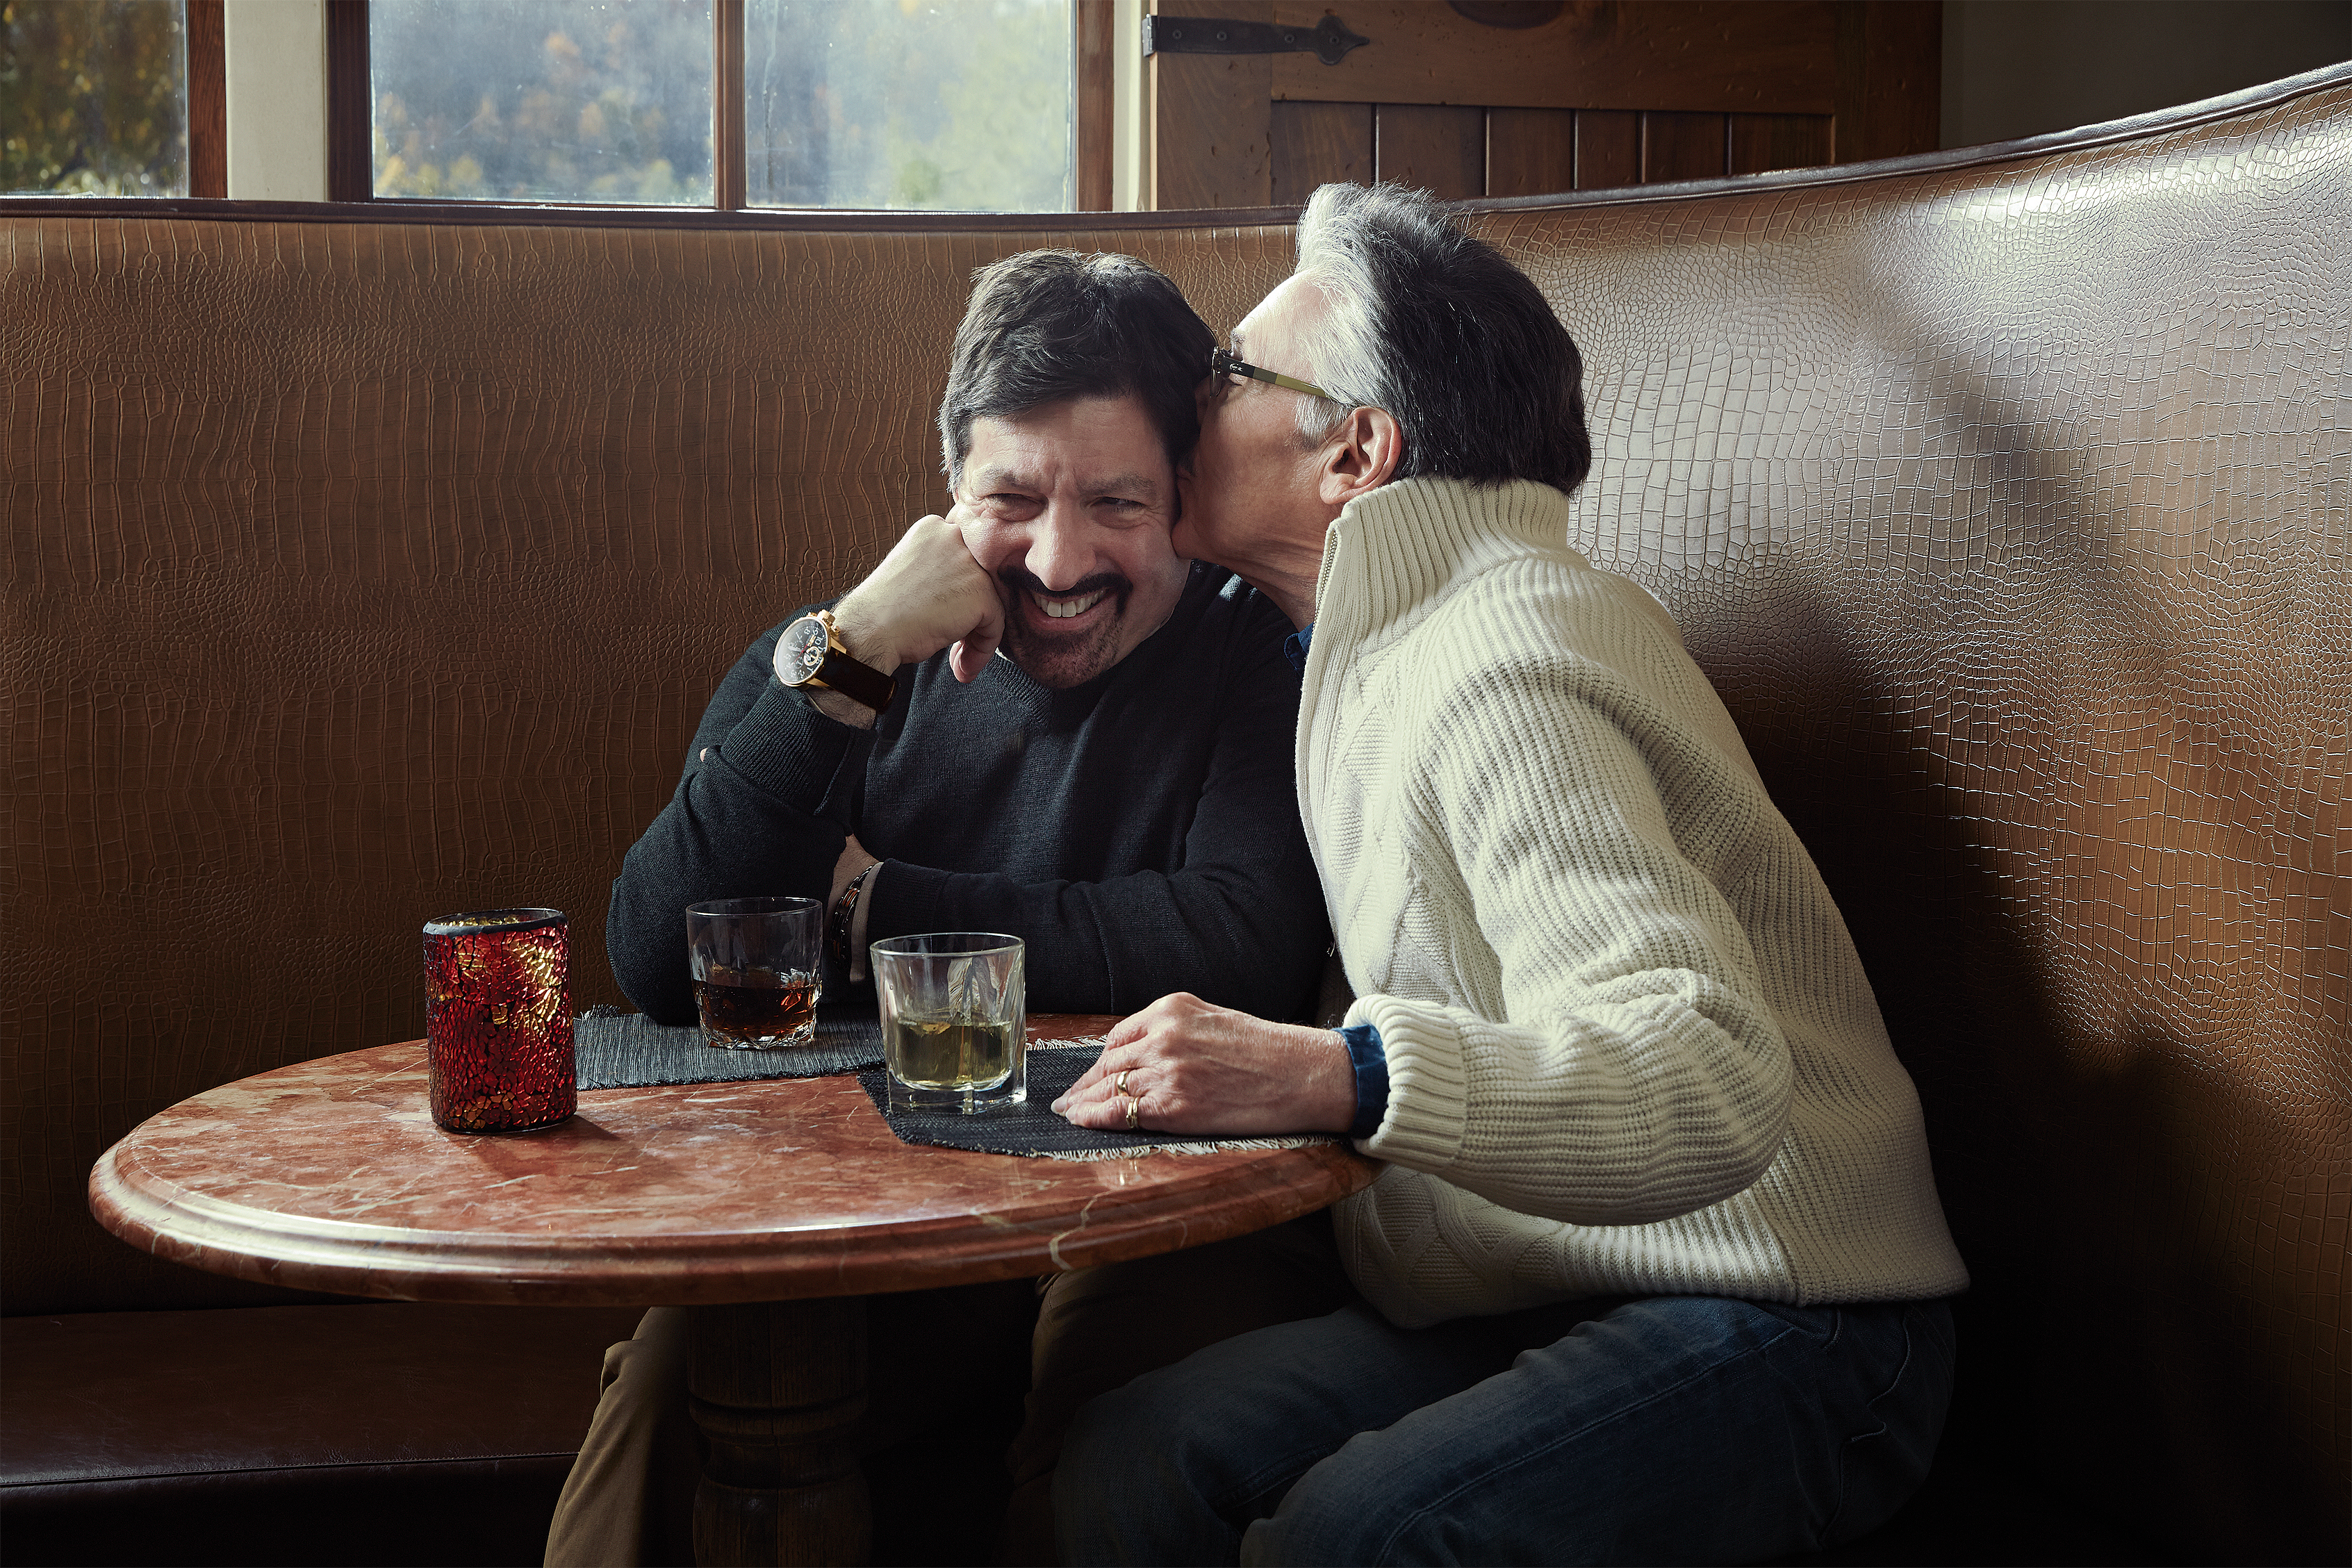 Mark Quiello, 59, and Steven Rabinowitz, 69. Together for three decades, the two men finally married last year when their home state, New Jersey, legalized gay marriage. Until then, says Quiello,  financial planning was a constant challenge. Everything is easier now.